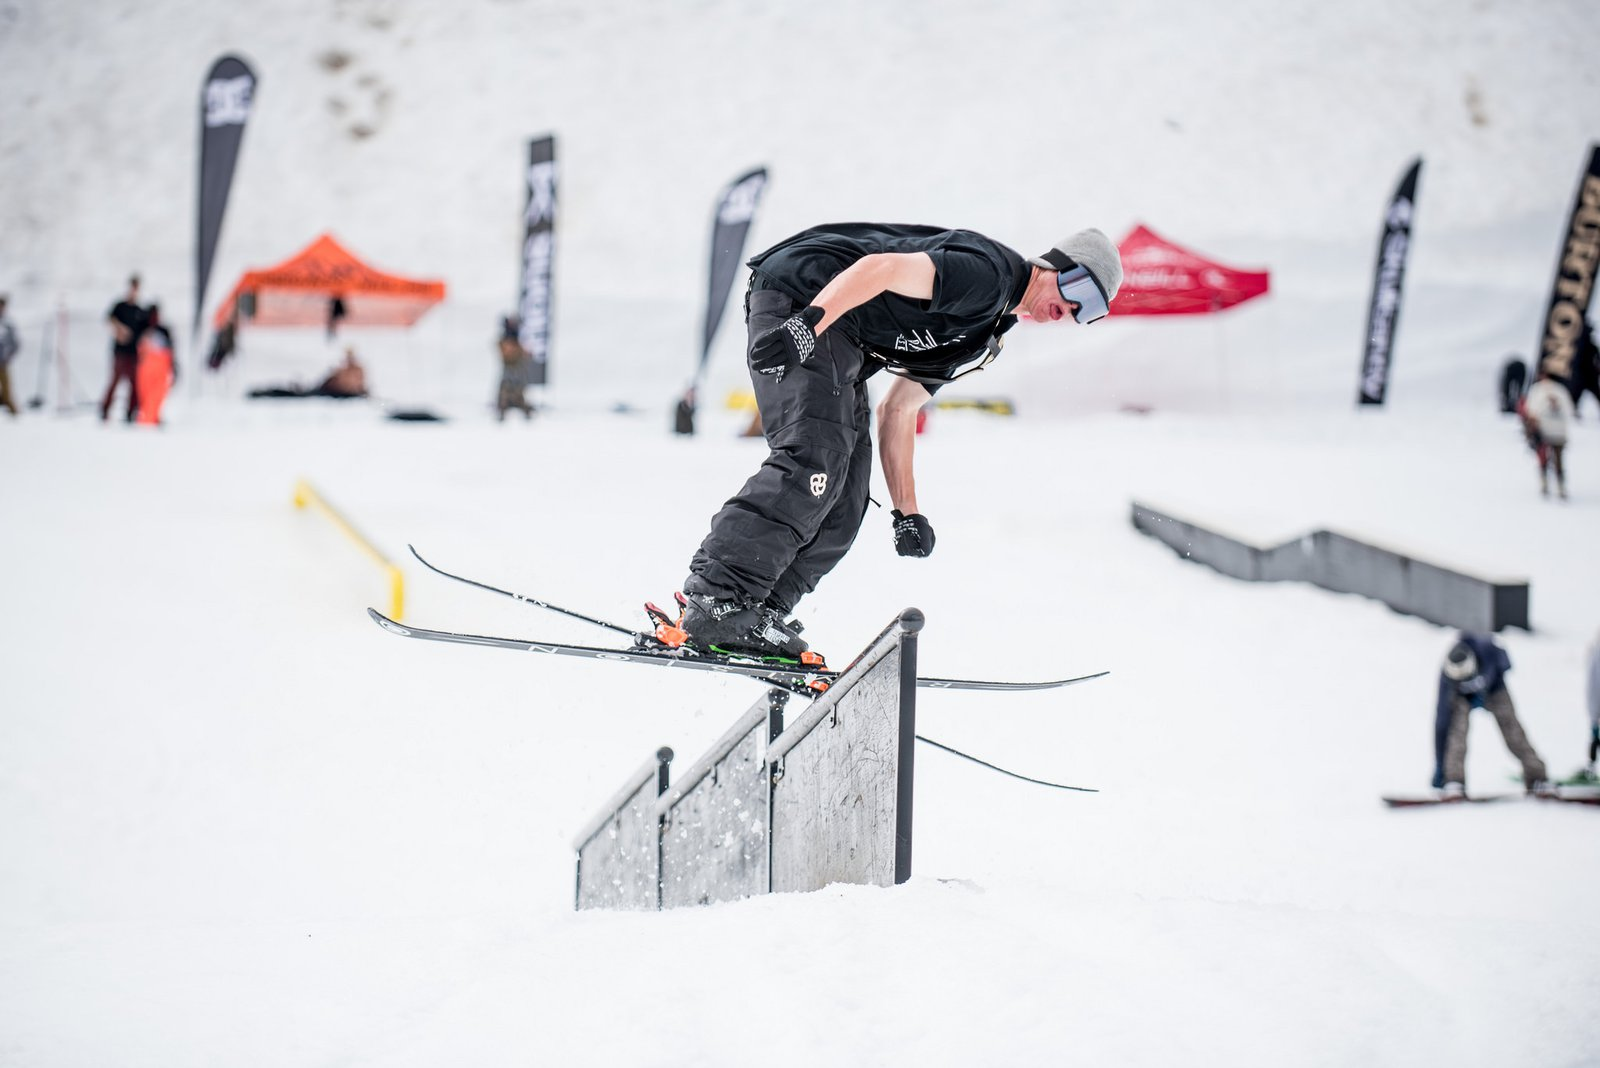 Mike Cappola at The Camp of Champions